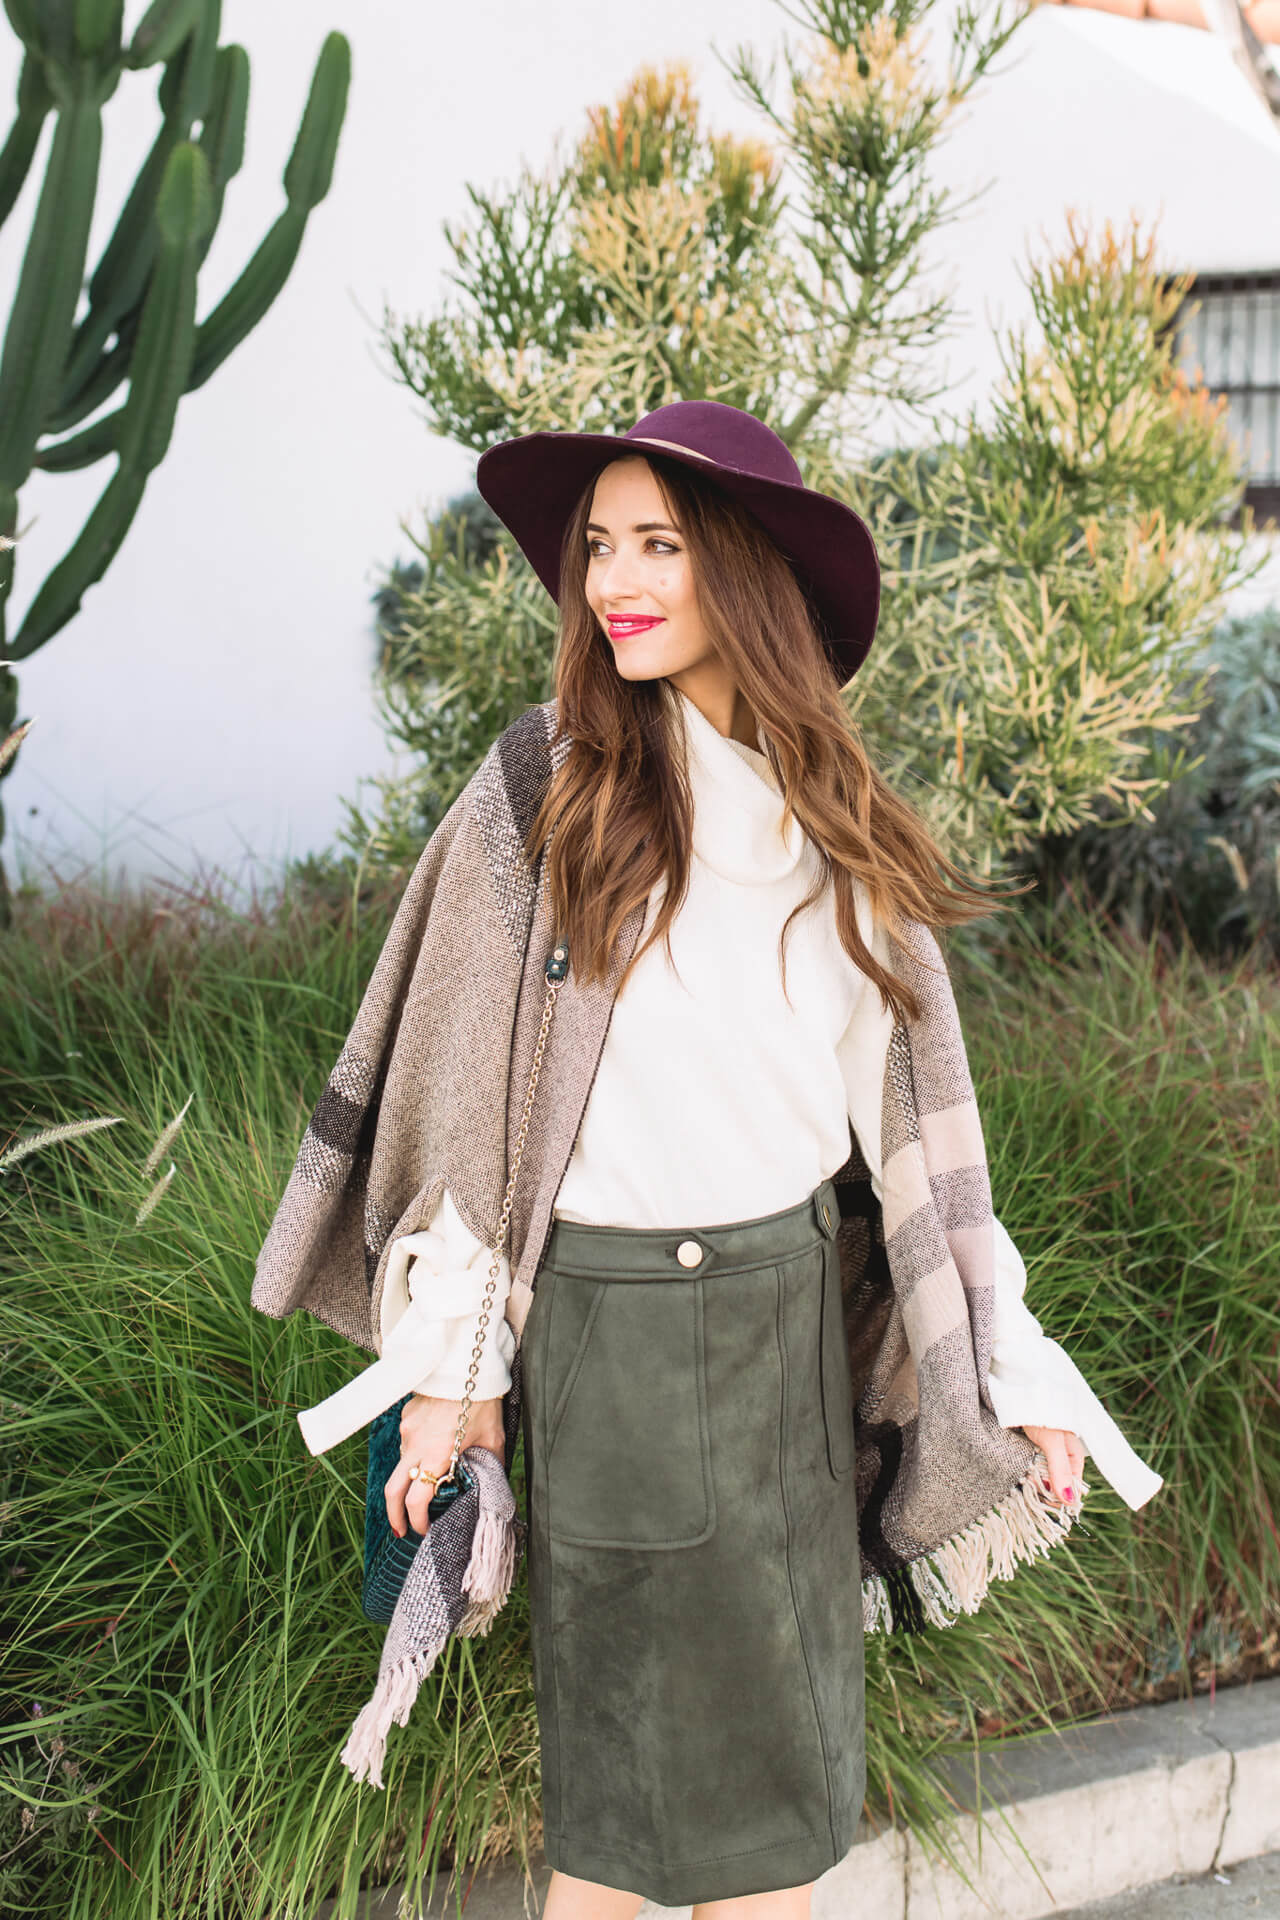 twirling around in this fun poncho - M Loves M @marmar